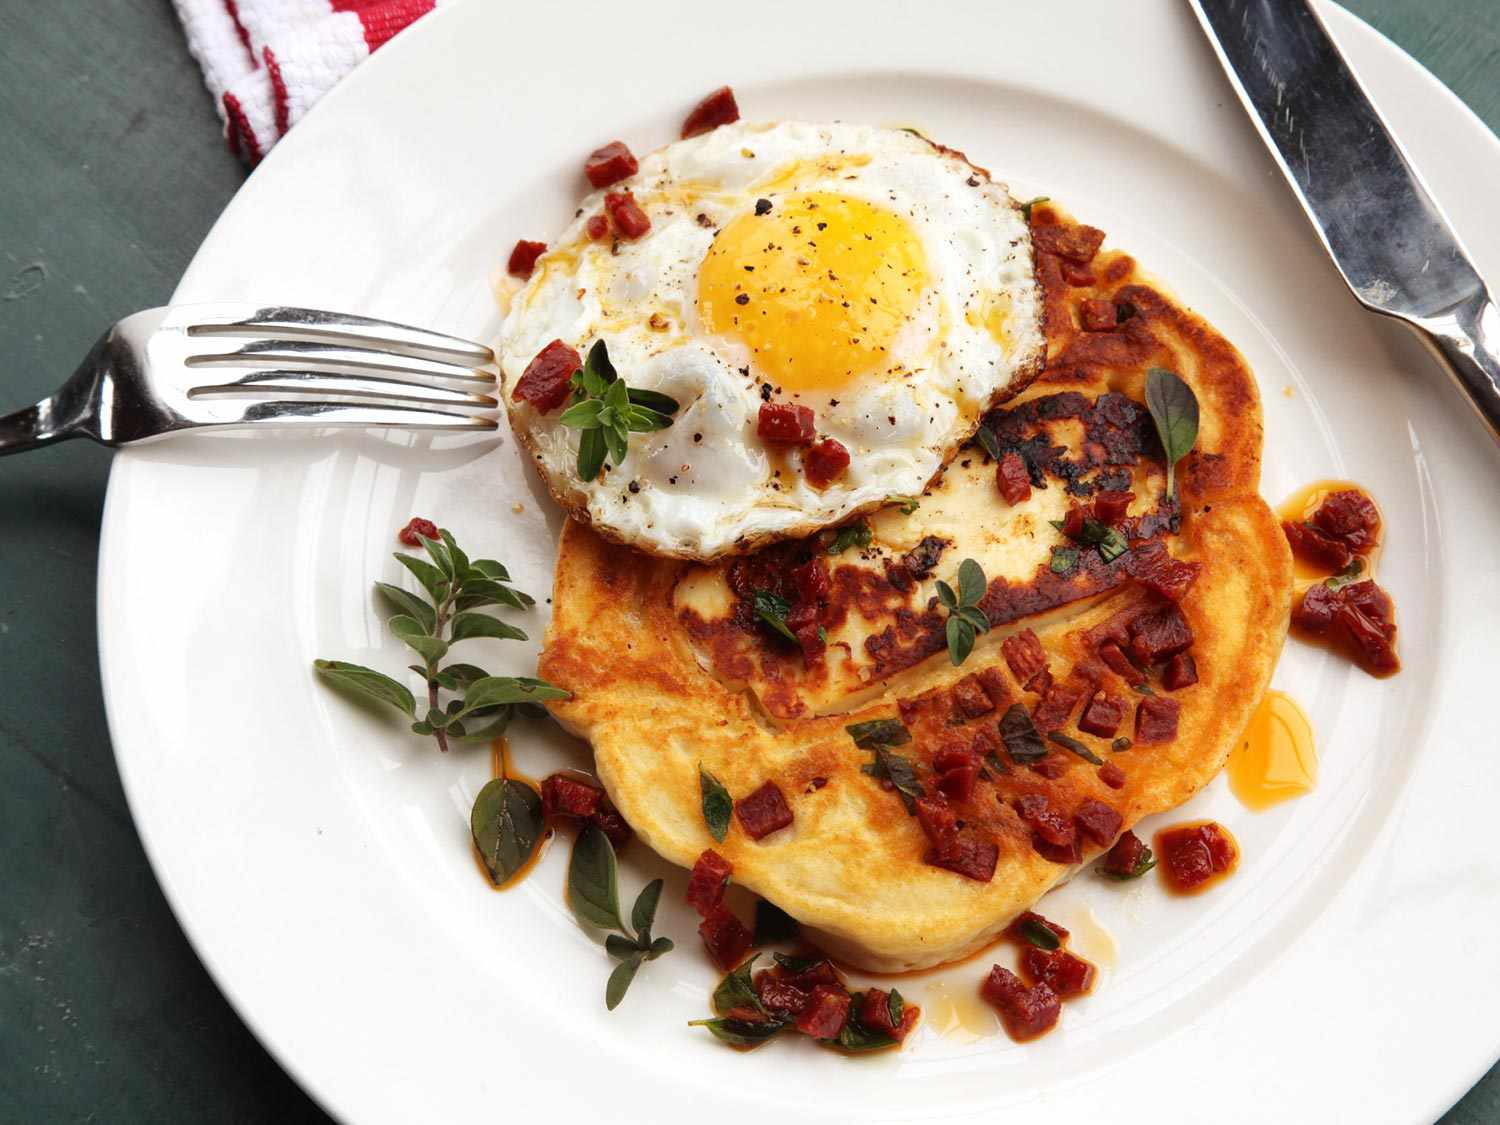 A chorizo and halloumi pancake with a fried egg on a plate. The food is garnished with oregano sprigs and there is a fork and knife on the plate.